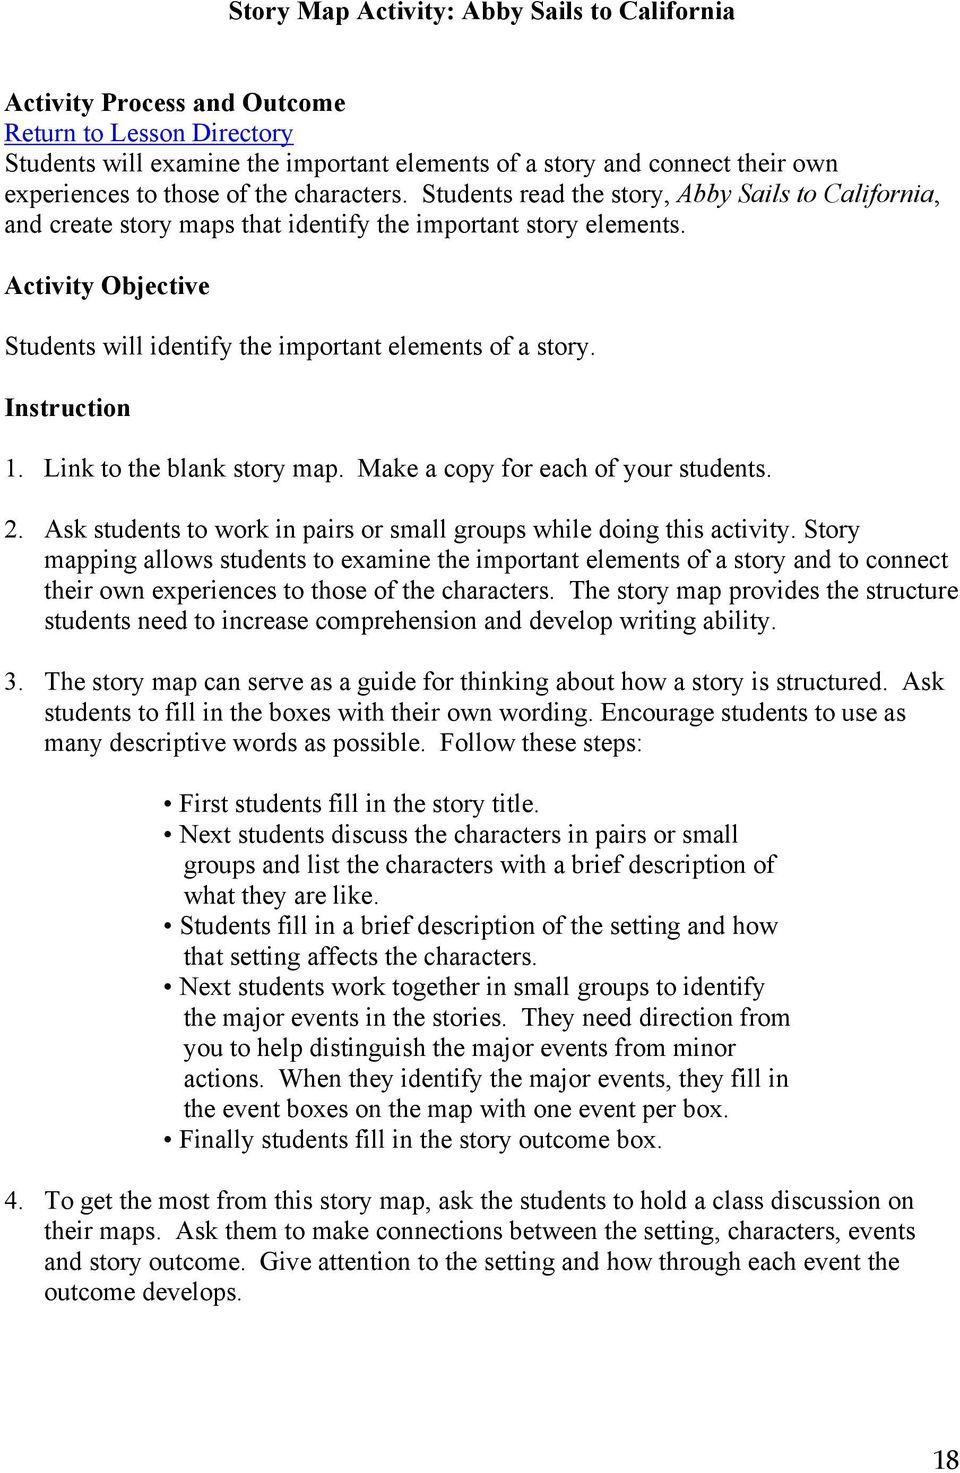 Activity Objective Students will identify the important elements of a story. Instruction 1. Link to the blank story map. Make a copy for each of your students. 2.